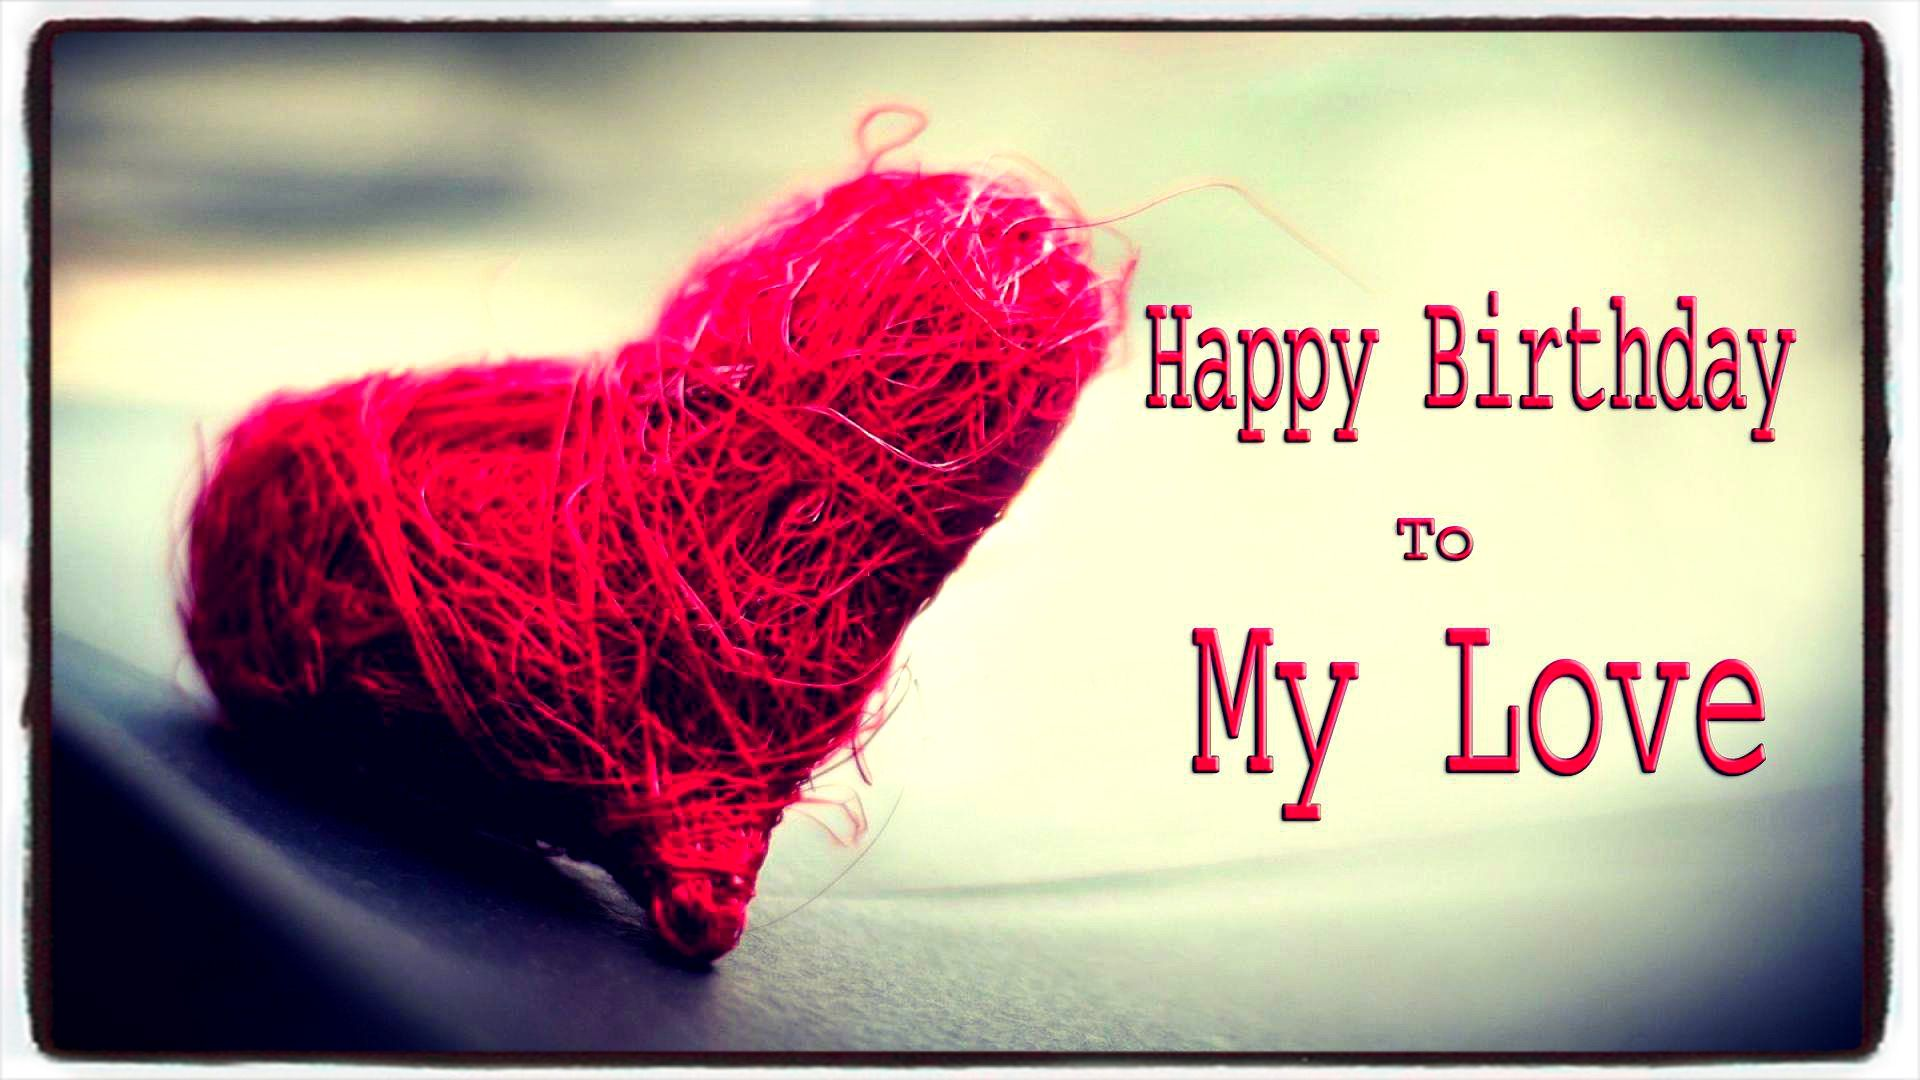 Happy Birthday My love Wishes and Hd Wallpapers